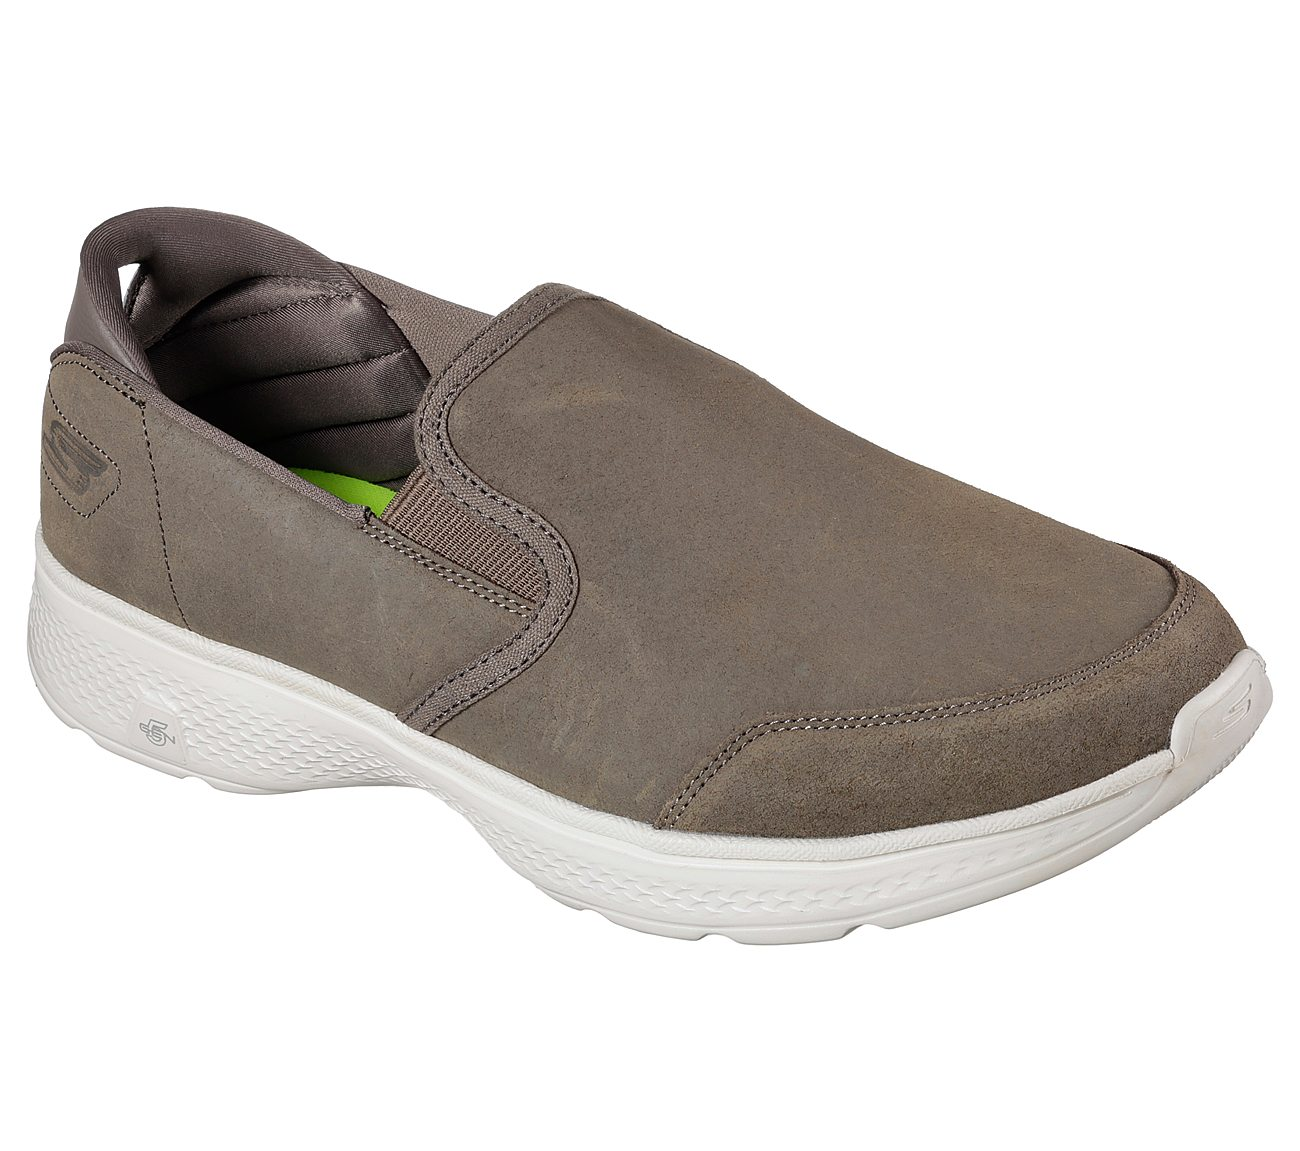 8a3585fd99918 Buy SKECHERS Skechers GOwalk 4 - Deliver Skechers Performance Shoes ...